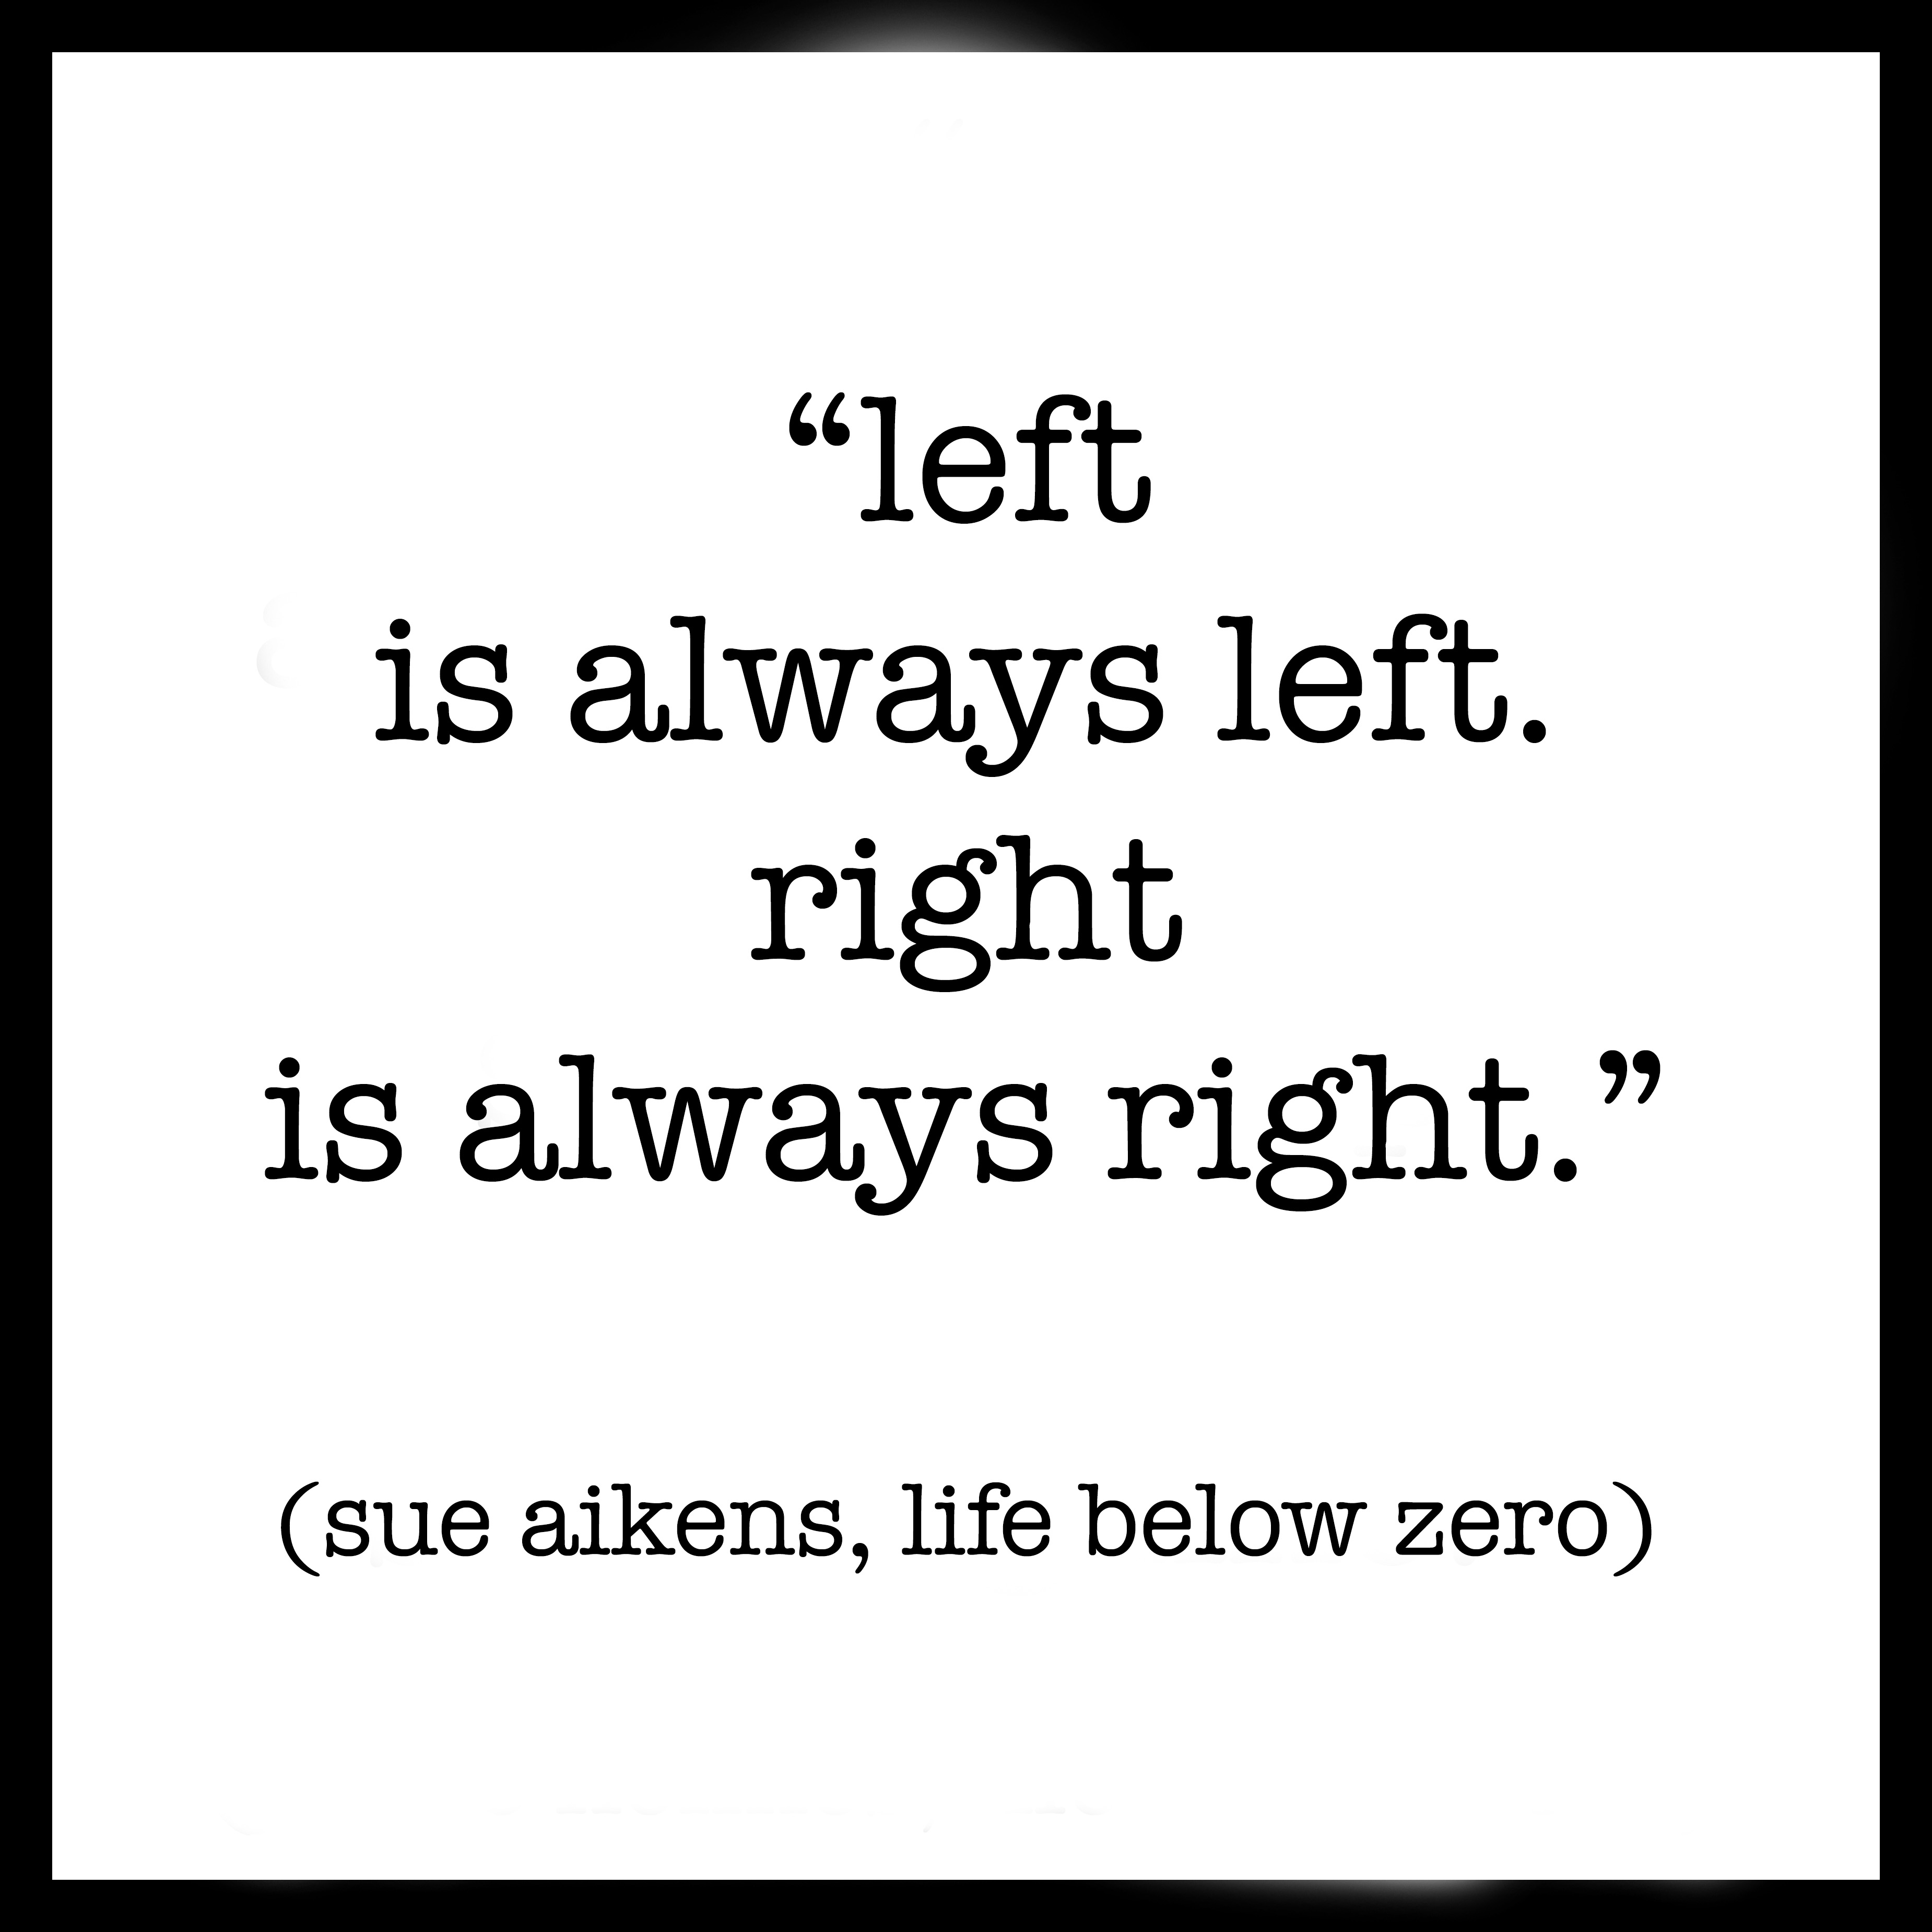 lifebelowzeroquotesueaikens copy